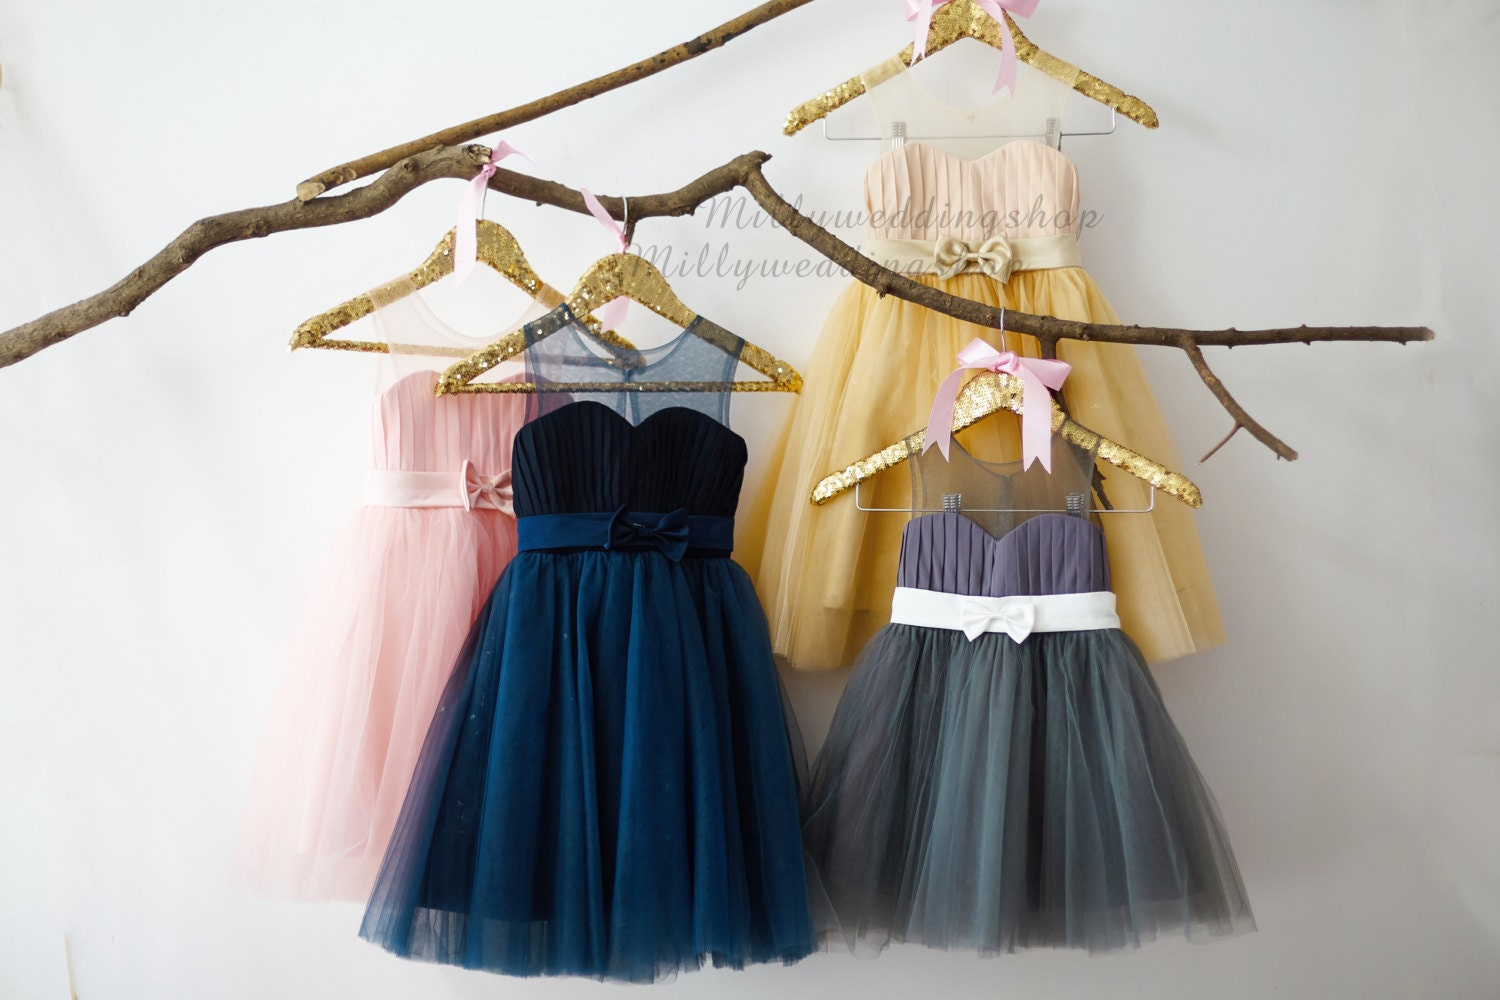 2a73d8ae2658 Pink Navy Blue Gray Champagne Chiffon Tulle Flower Girl Dress ...